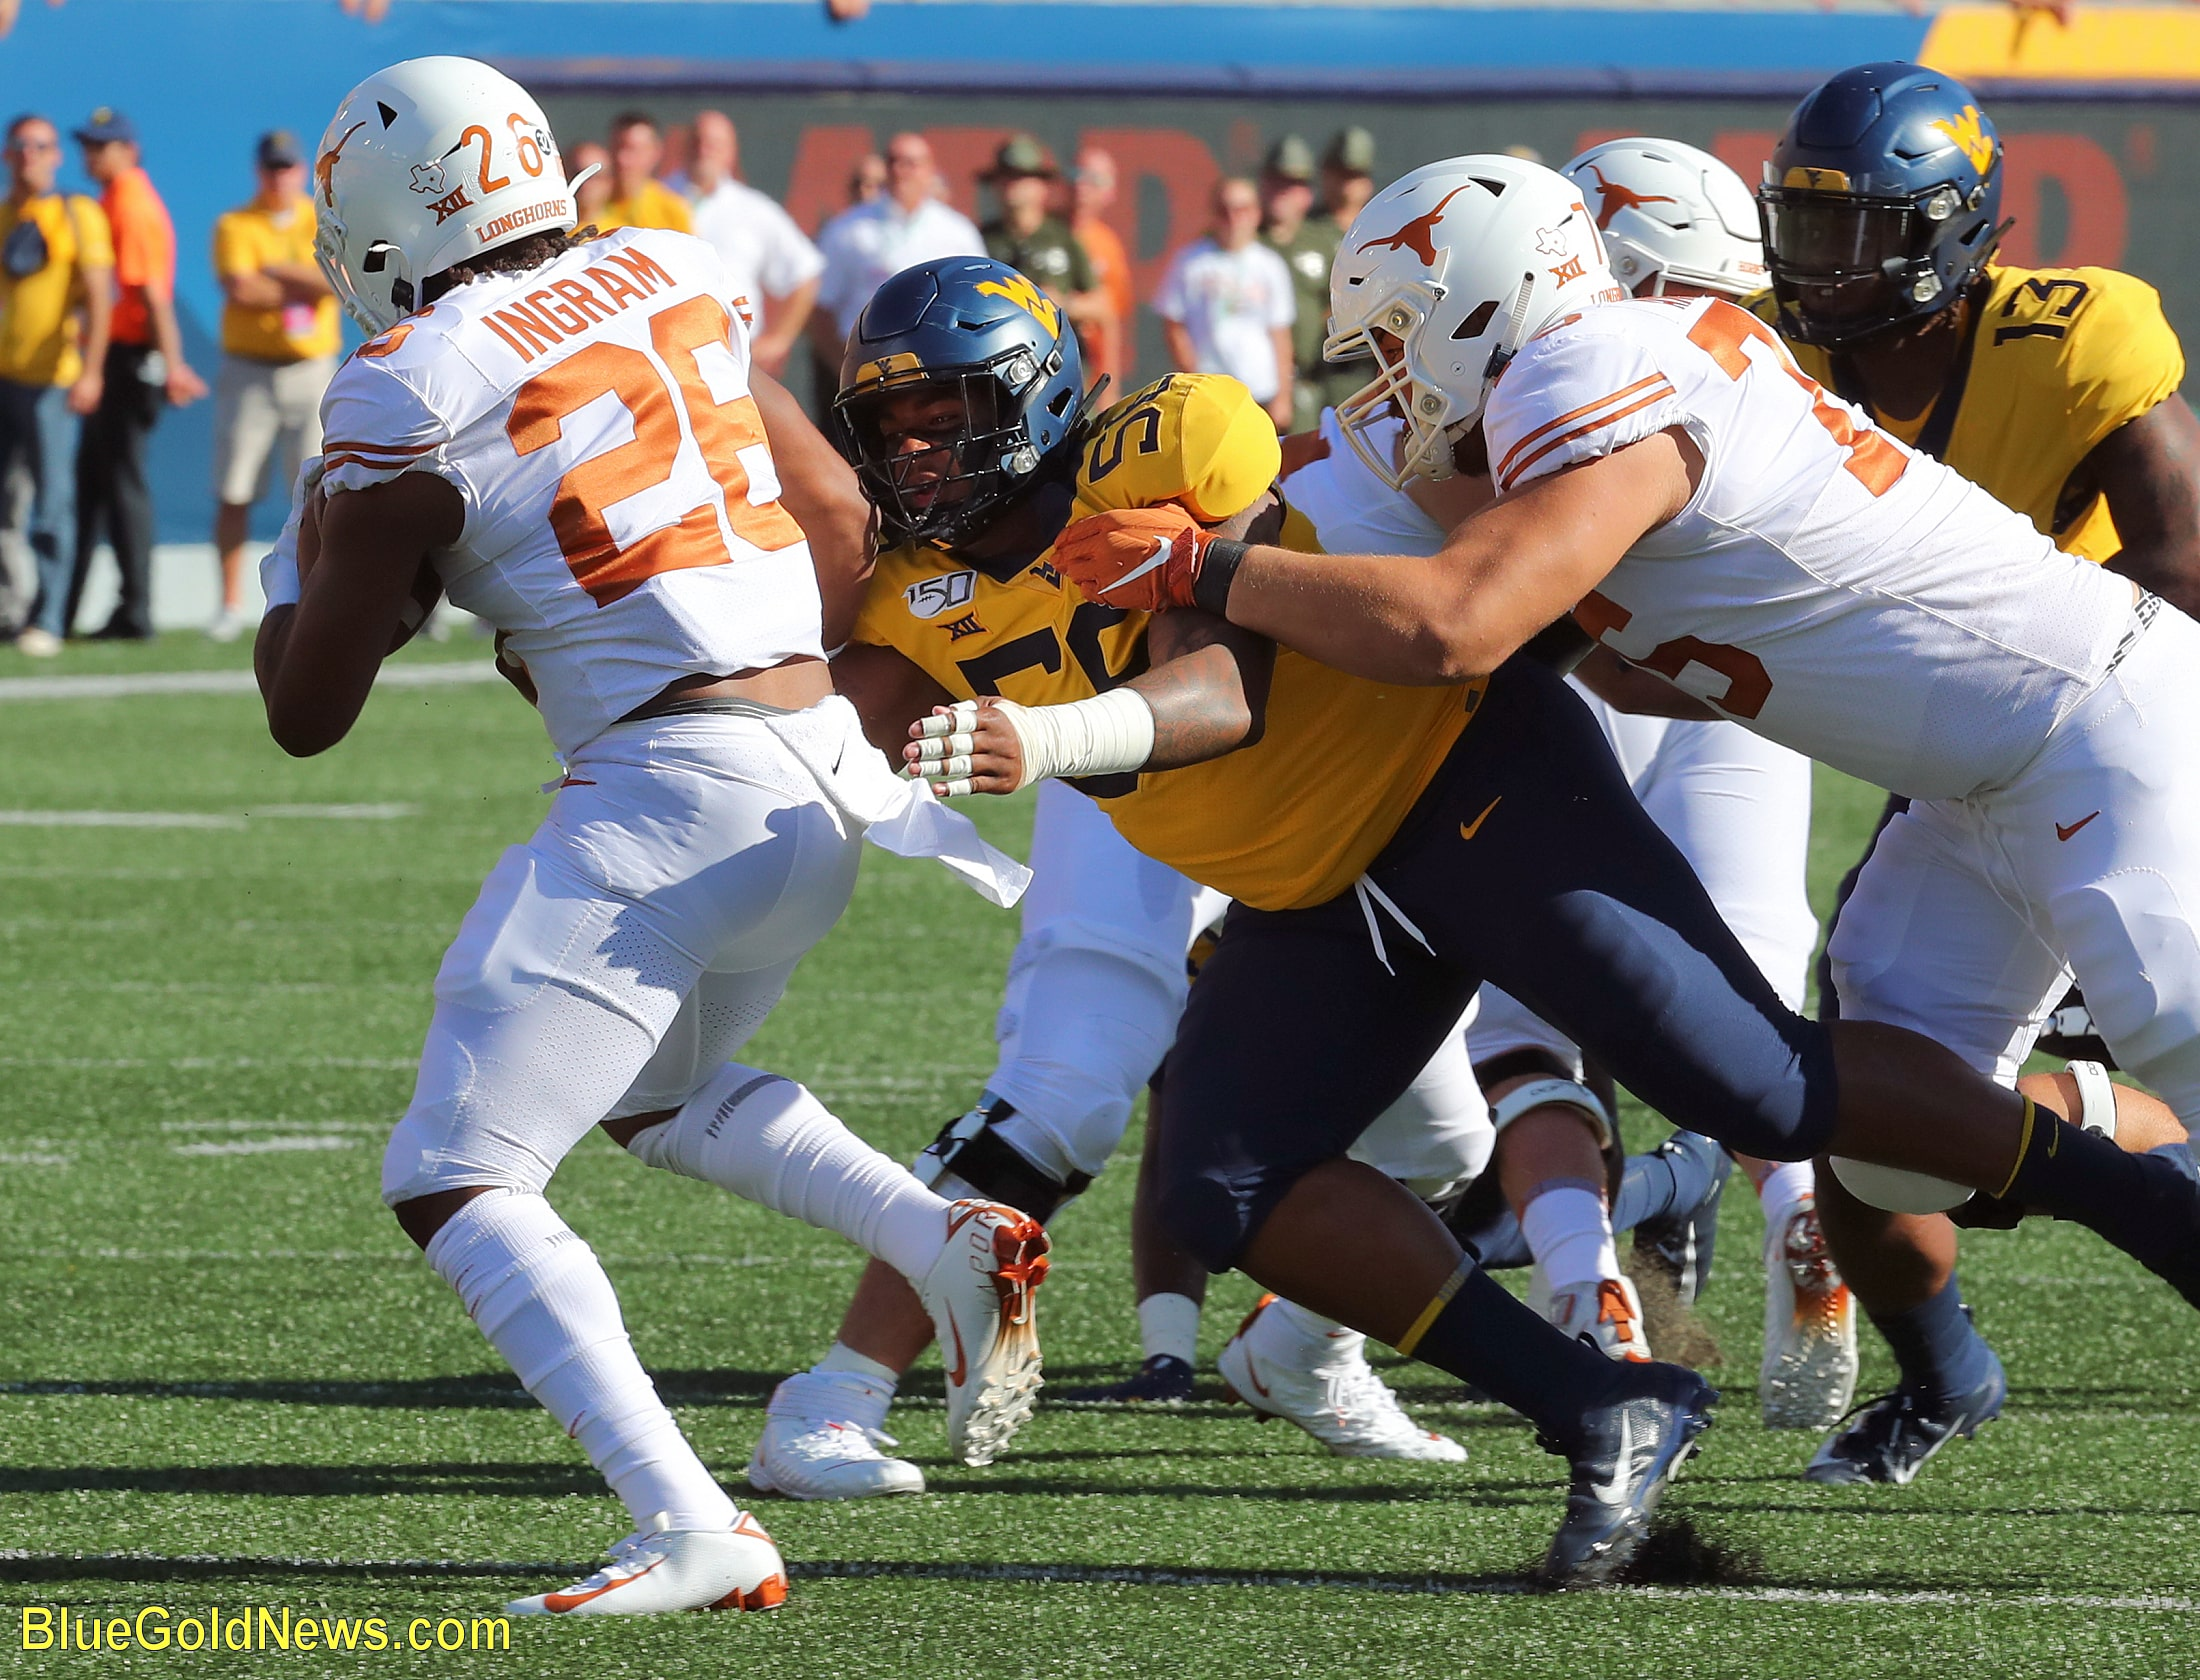 West Virginia defensive lineman Darius Stills (56) records a tackle for loss against Keaontay Ingram (26) despite the hold of Reese Moore (76)